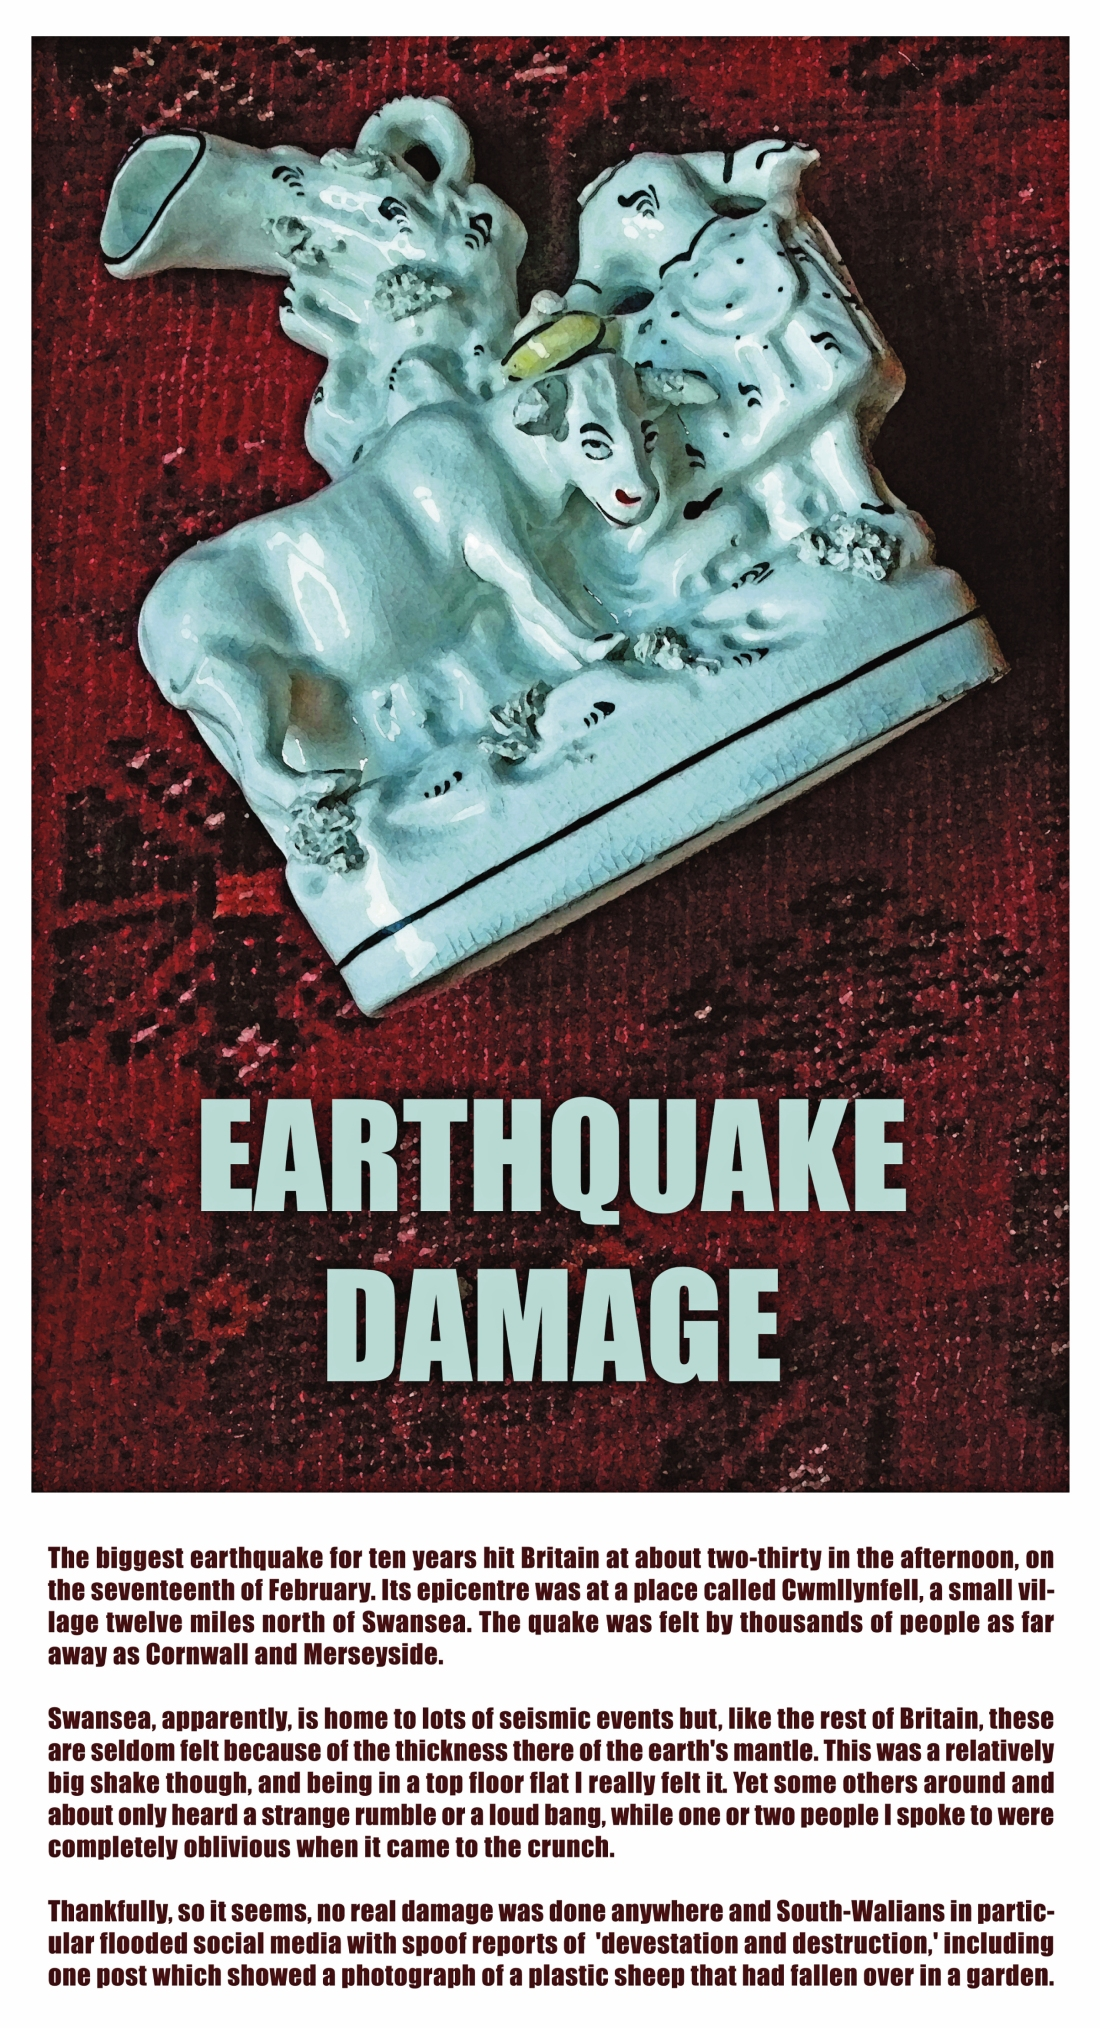 EARTHQUAKE DAMAGE - PODCAST PAGE 3